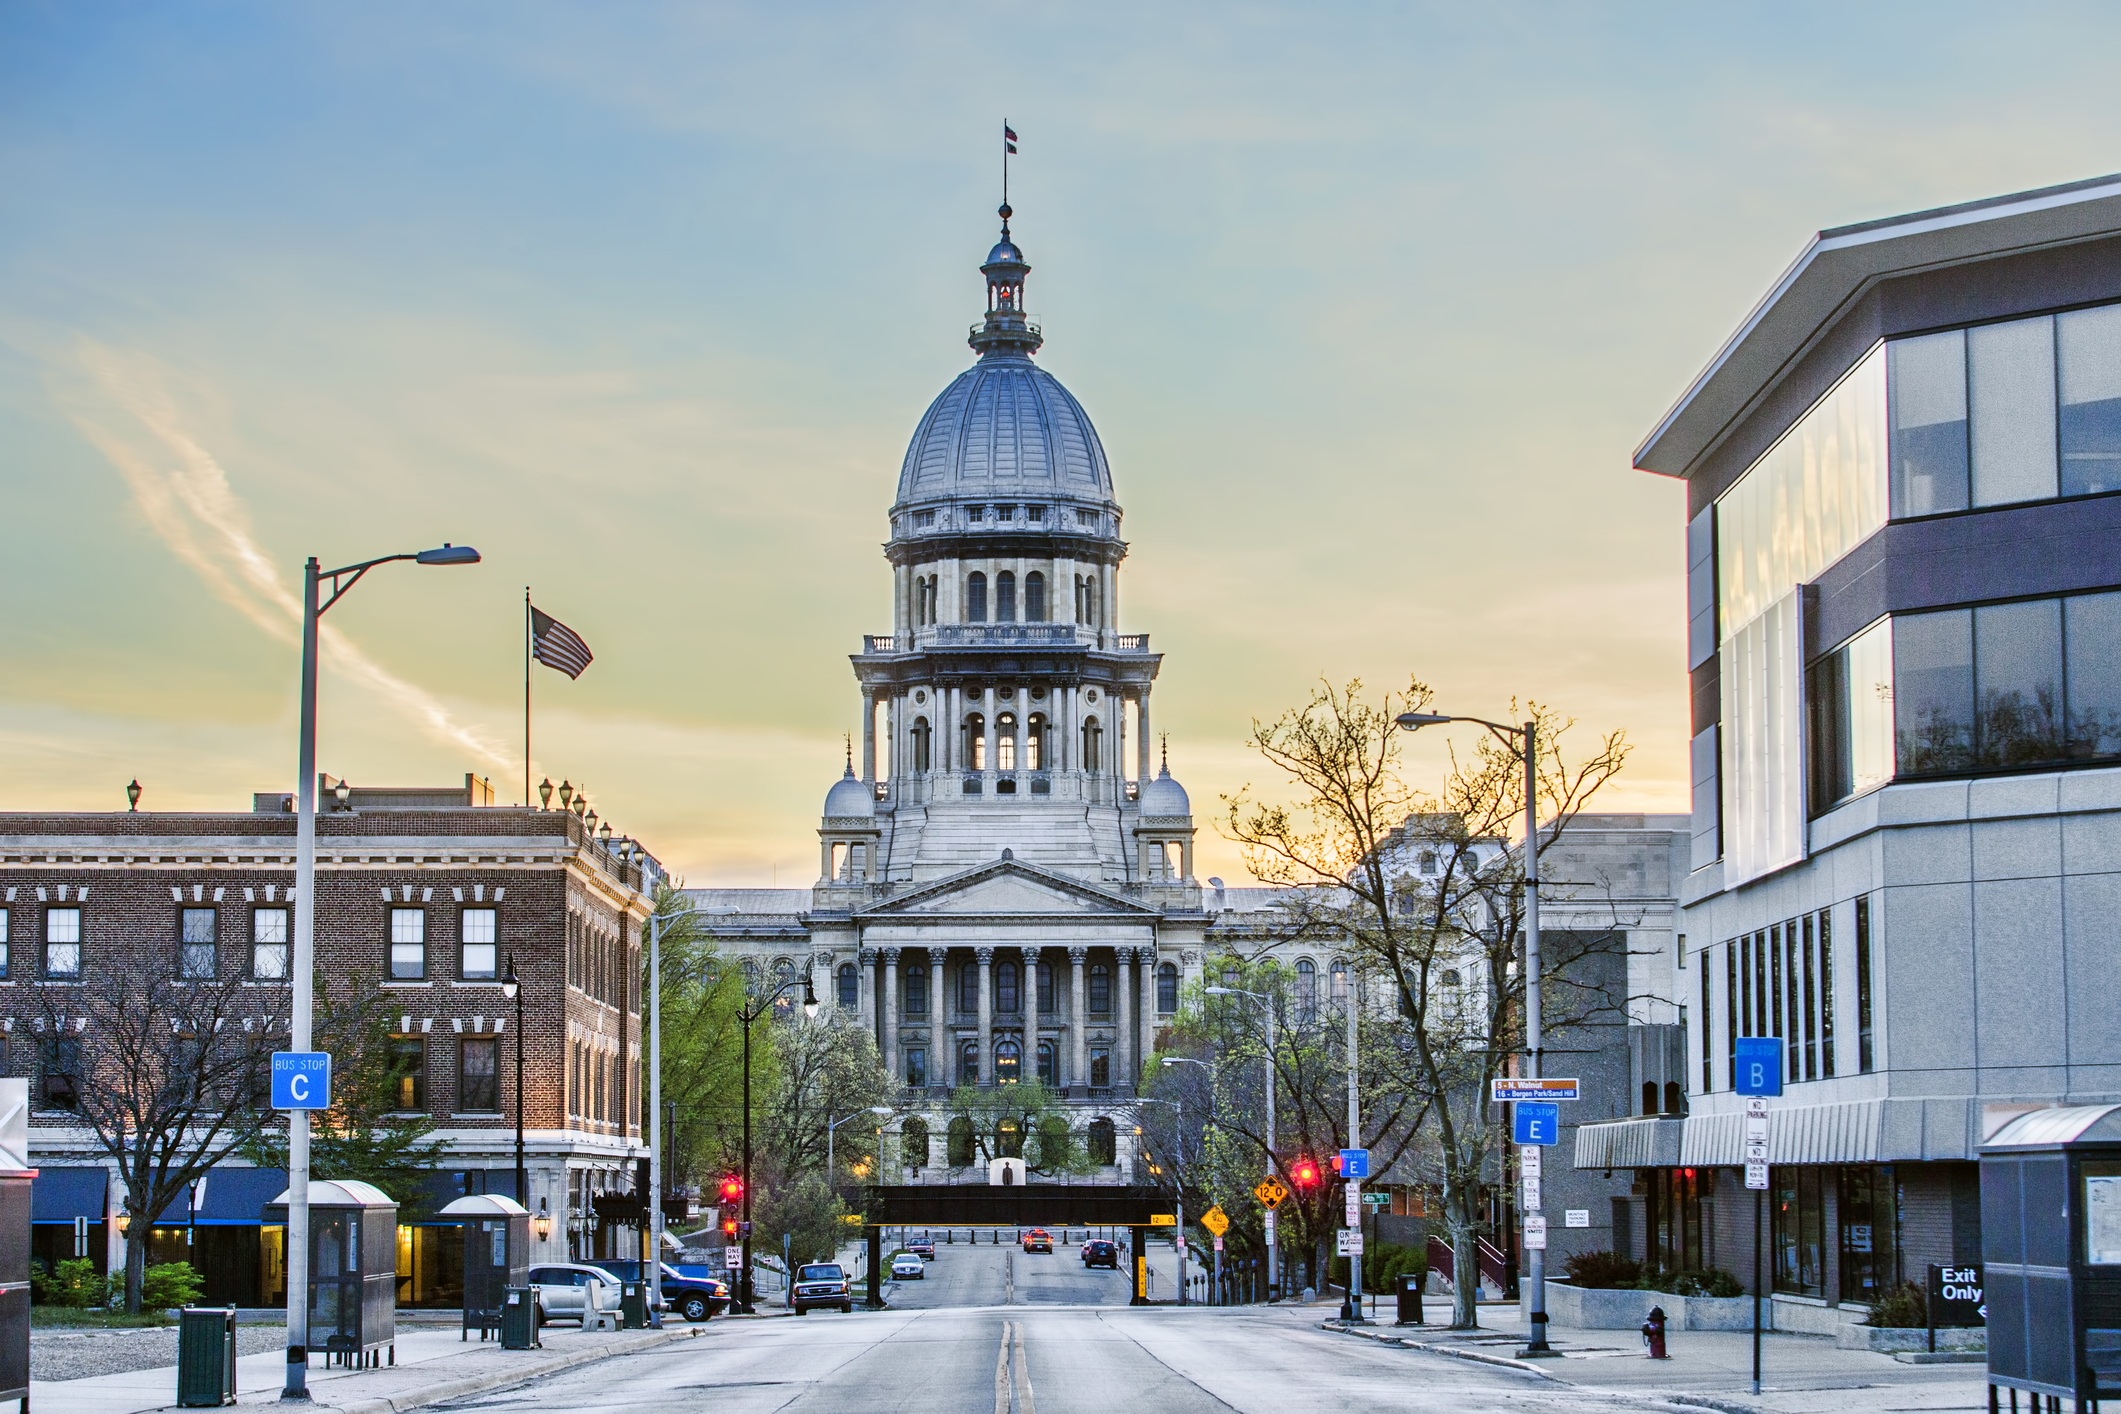 The state capitol building in Springfield, Illinois.